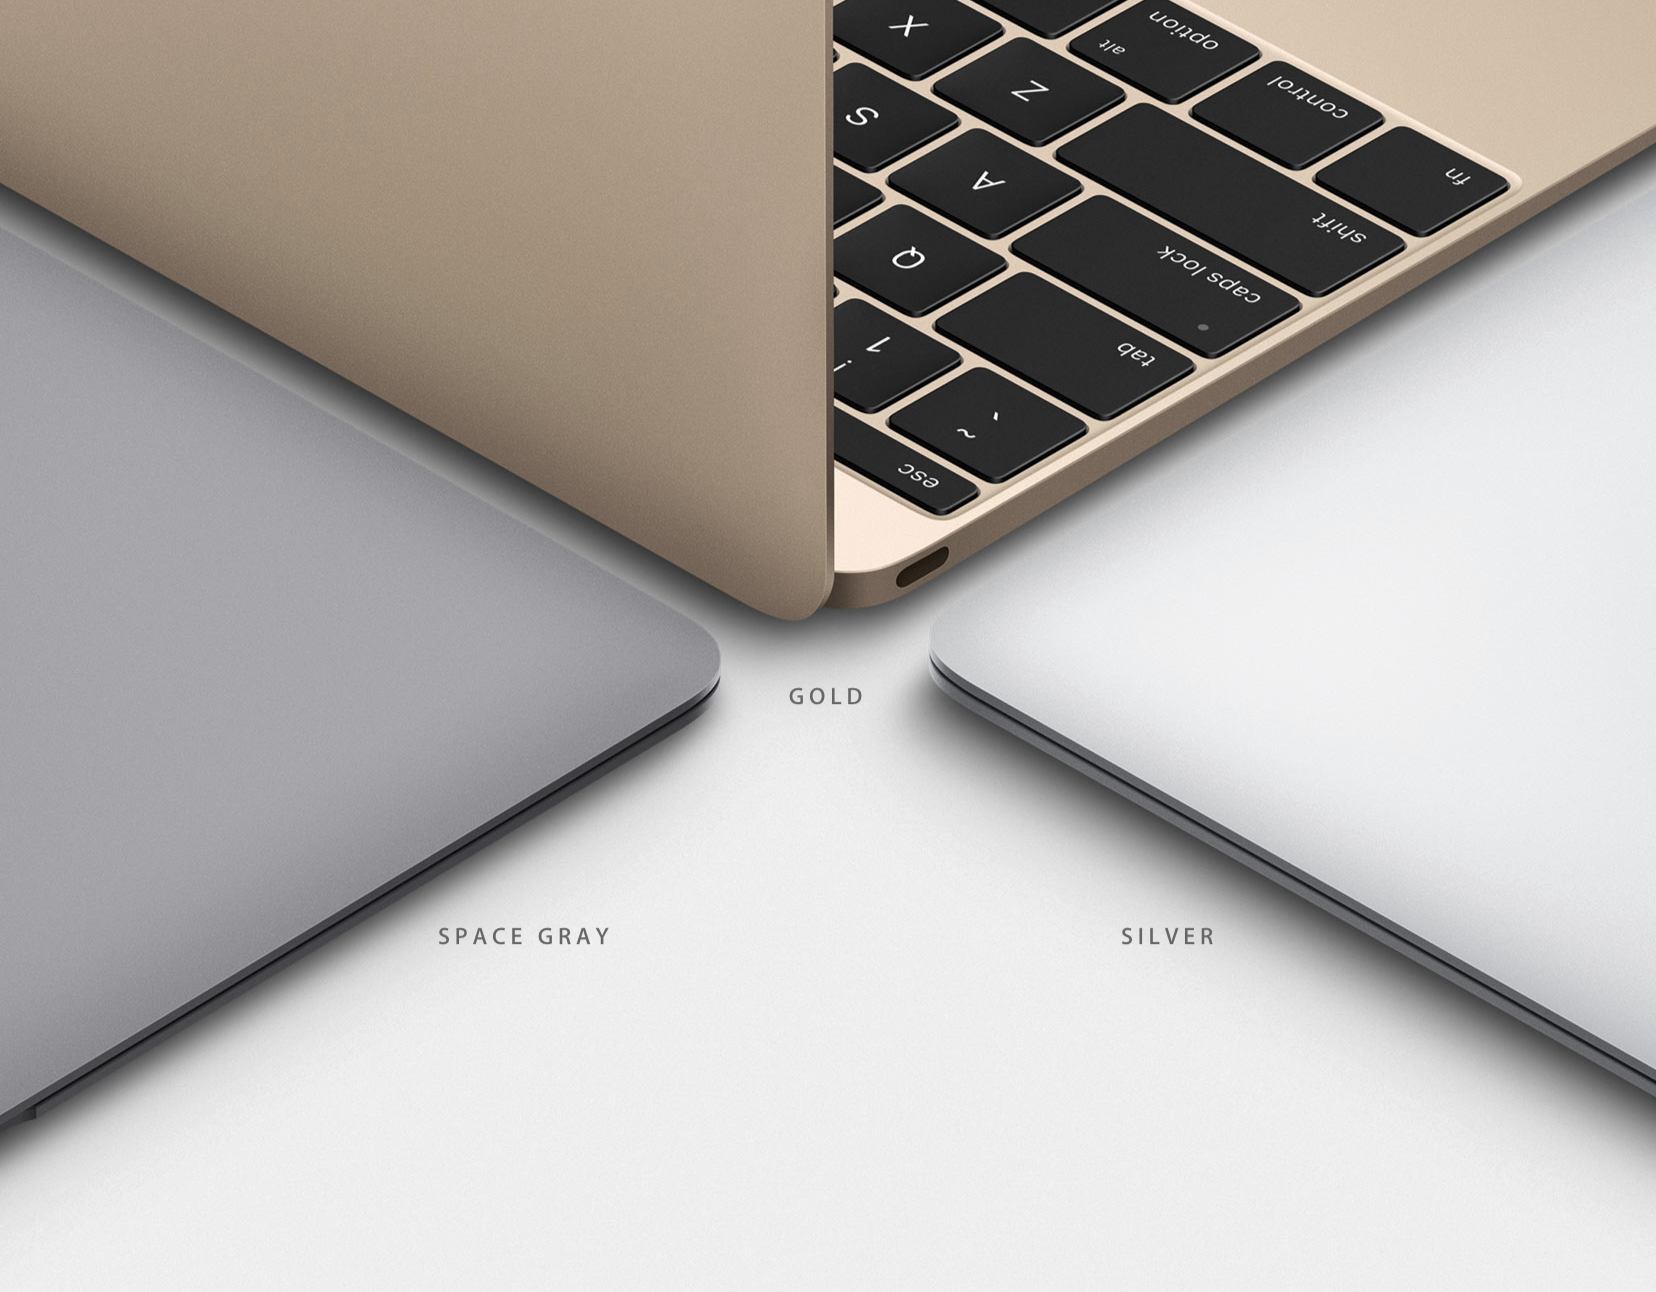 Macbook-gold-silver-space-gray